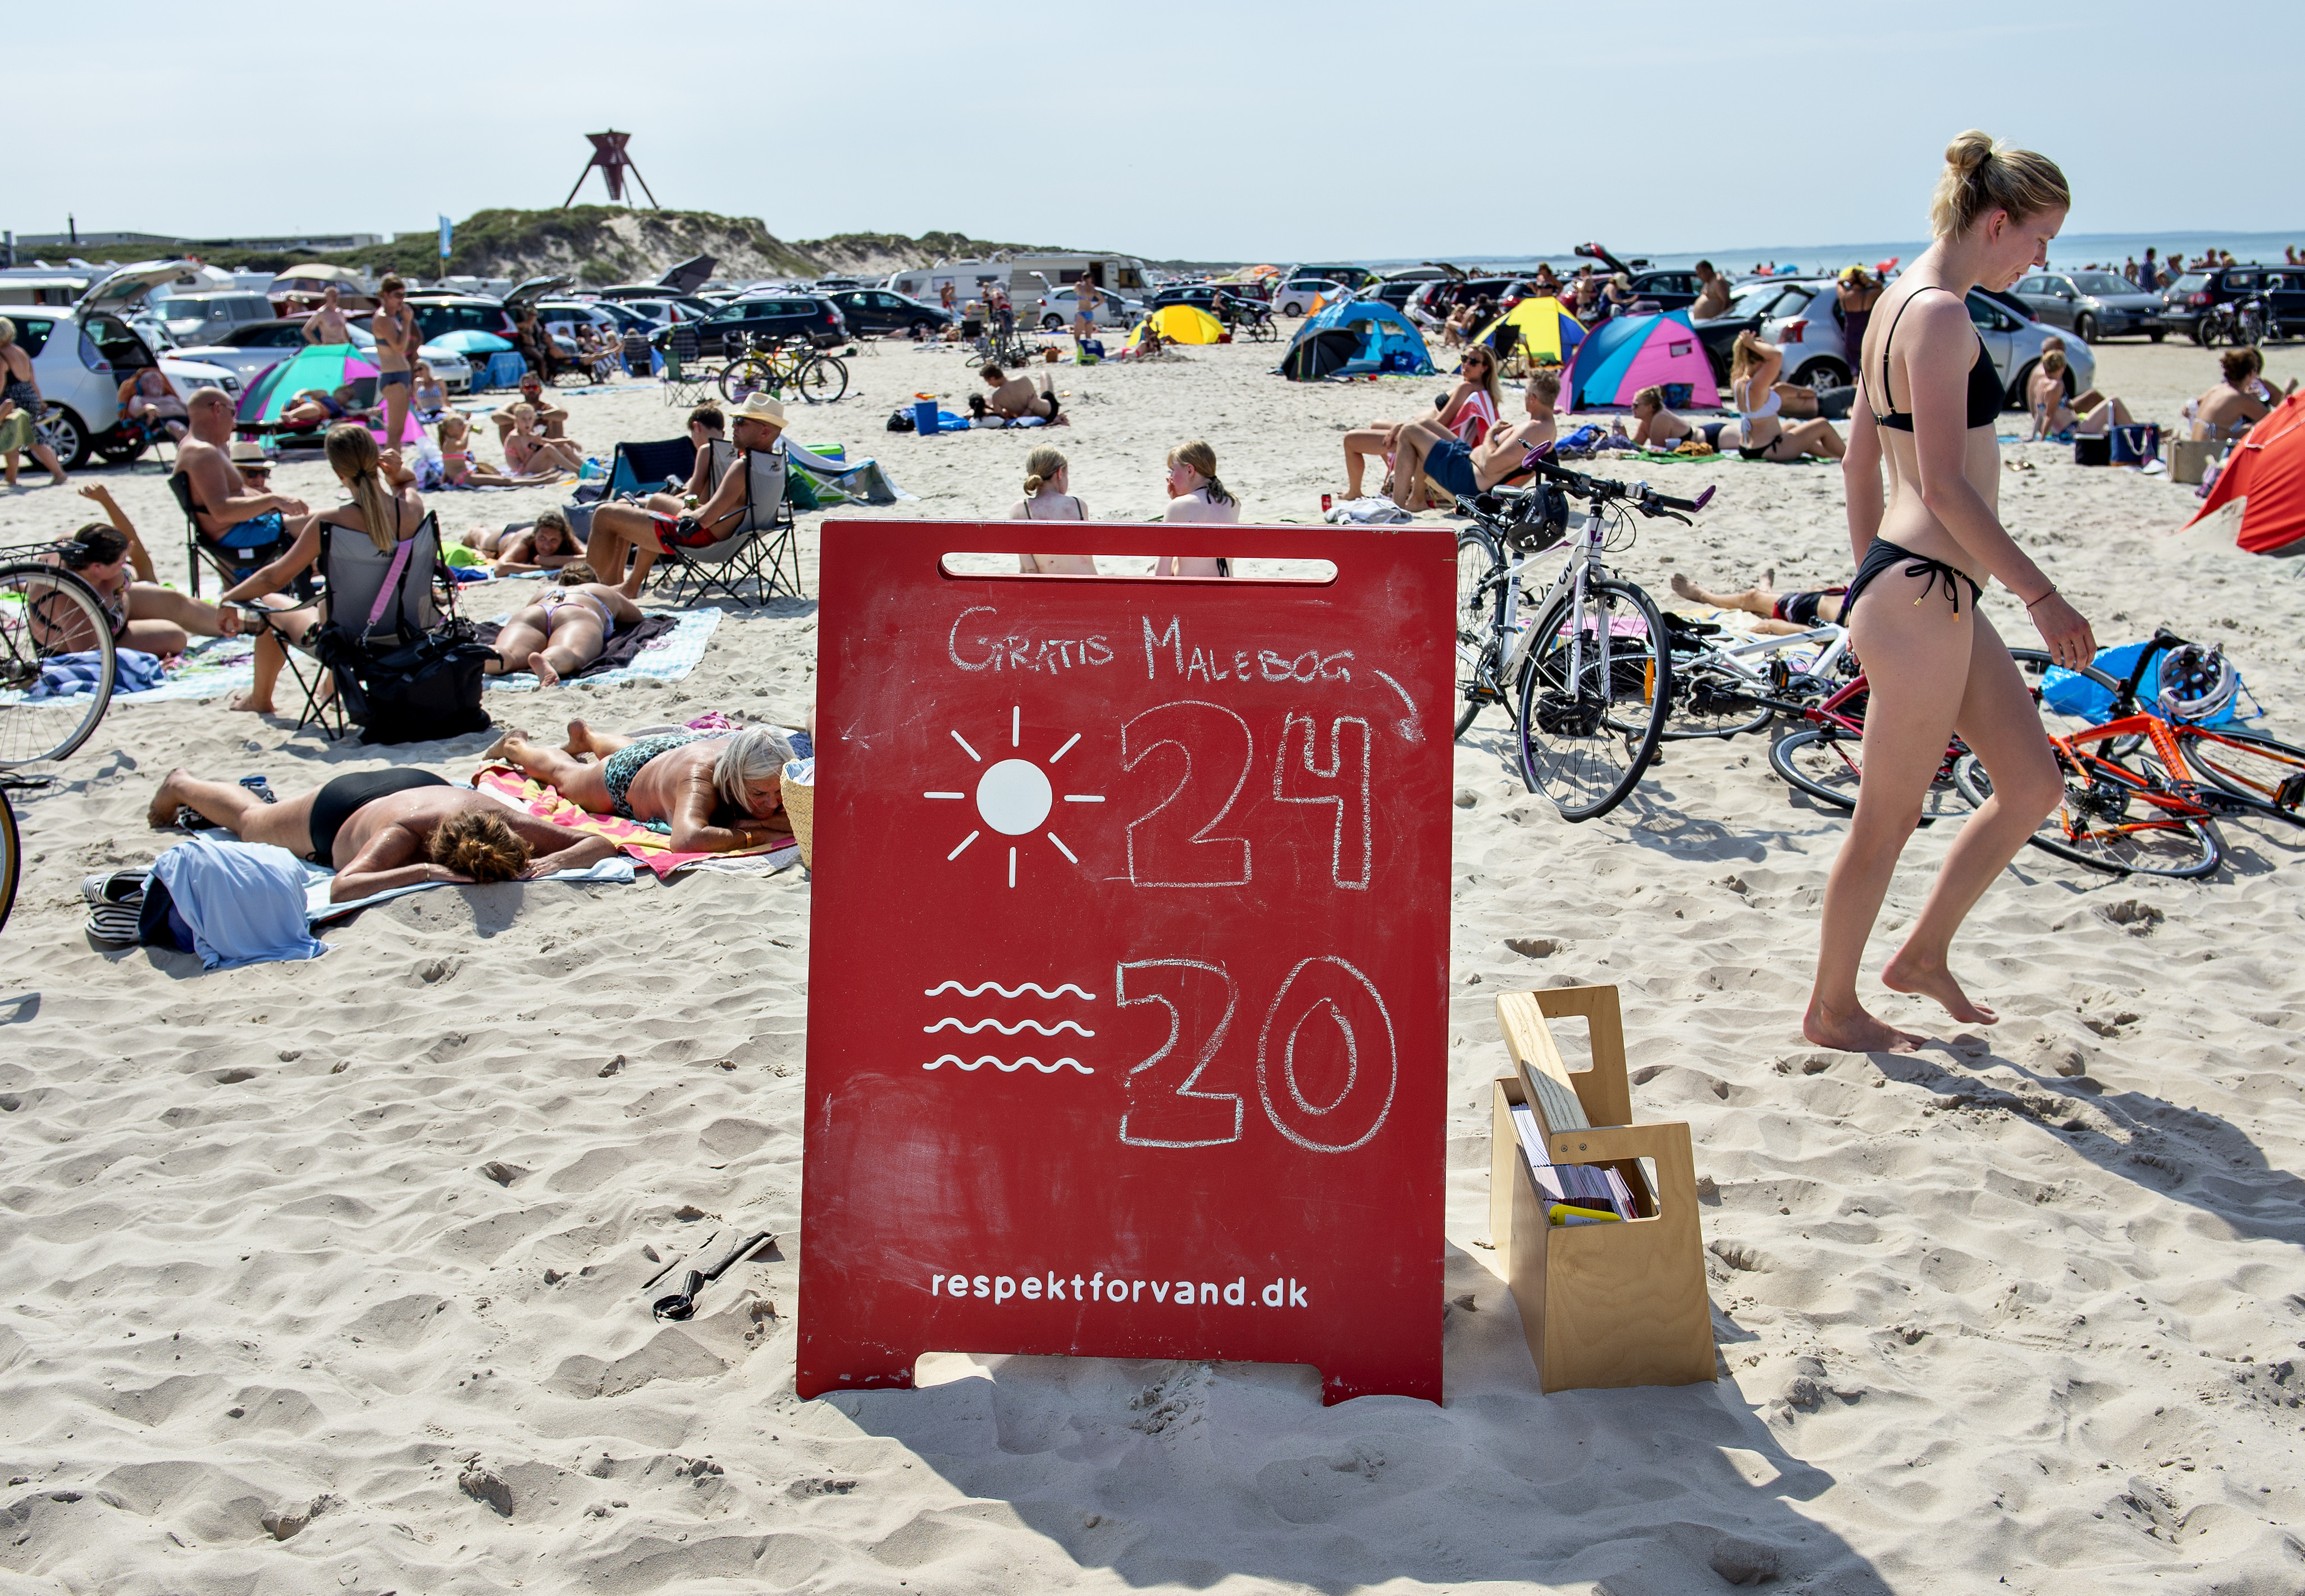 A stand shows air and water temperatures at a beach, which is packed with visitors enjoying the water of the North Sea on July 25, 2019 in Blokhus in Denmark.